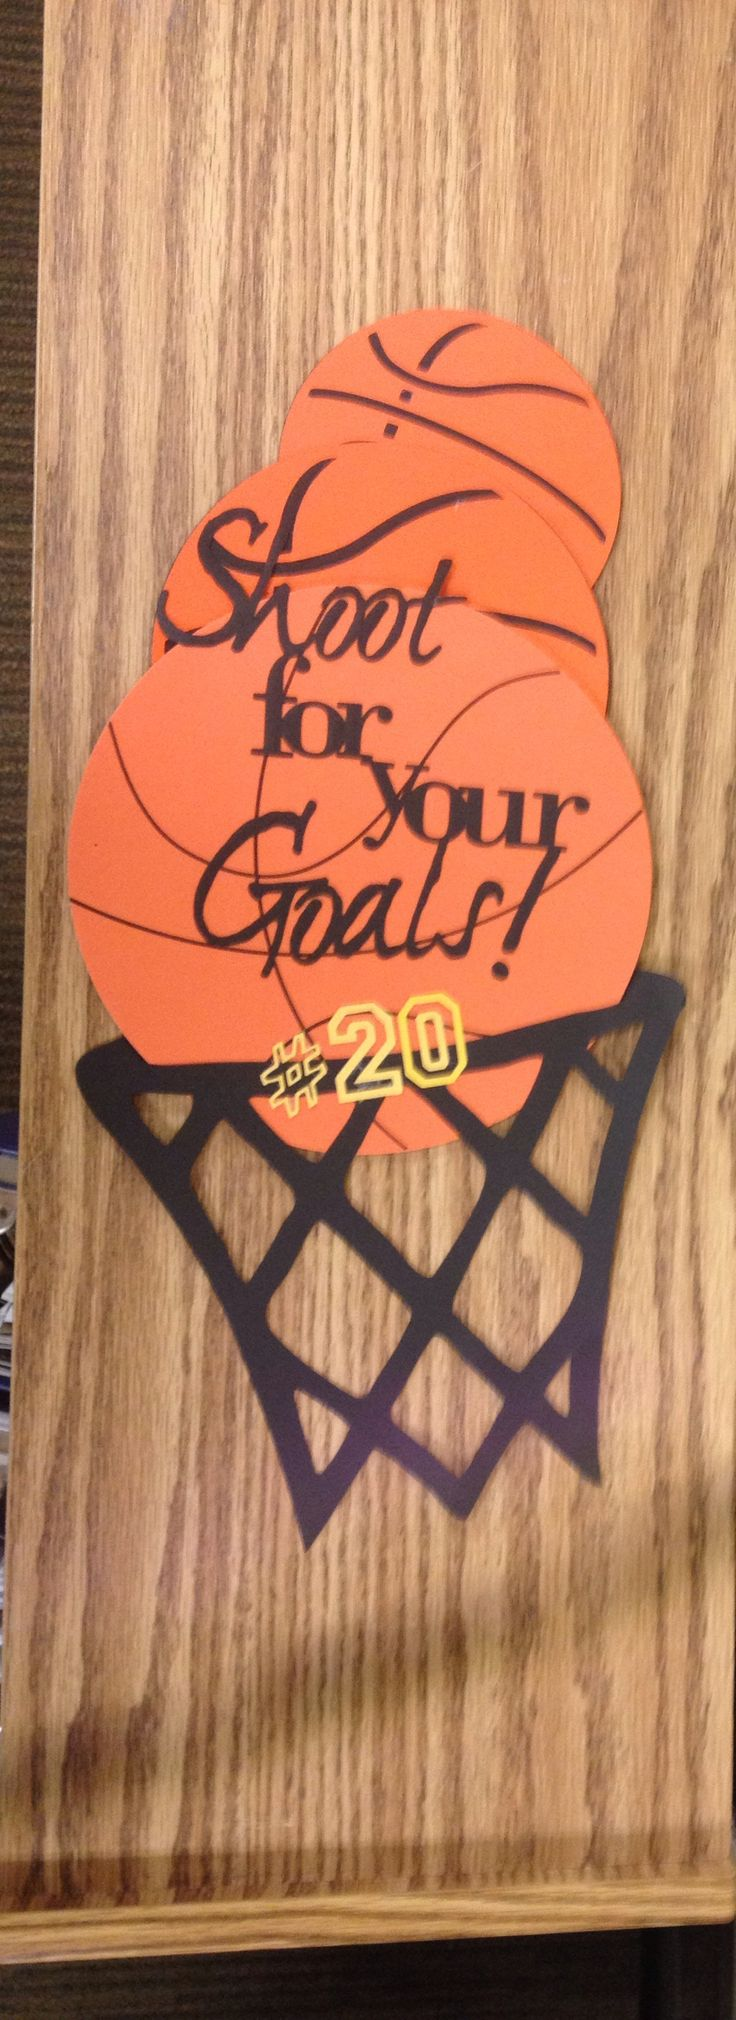 Locker decoration for basketball season for basketball buddies---how cute!